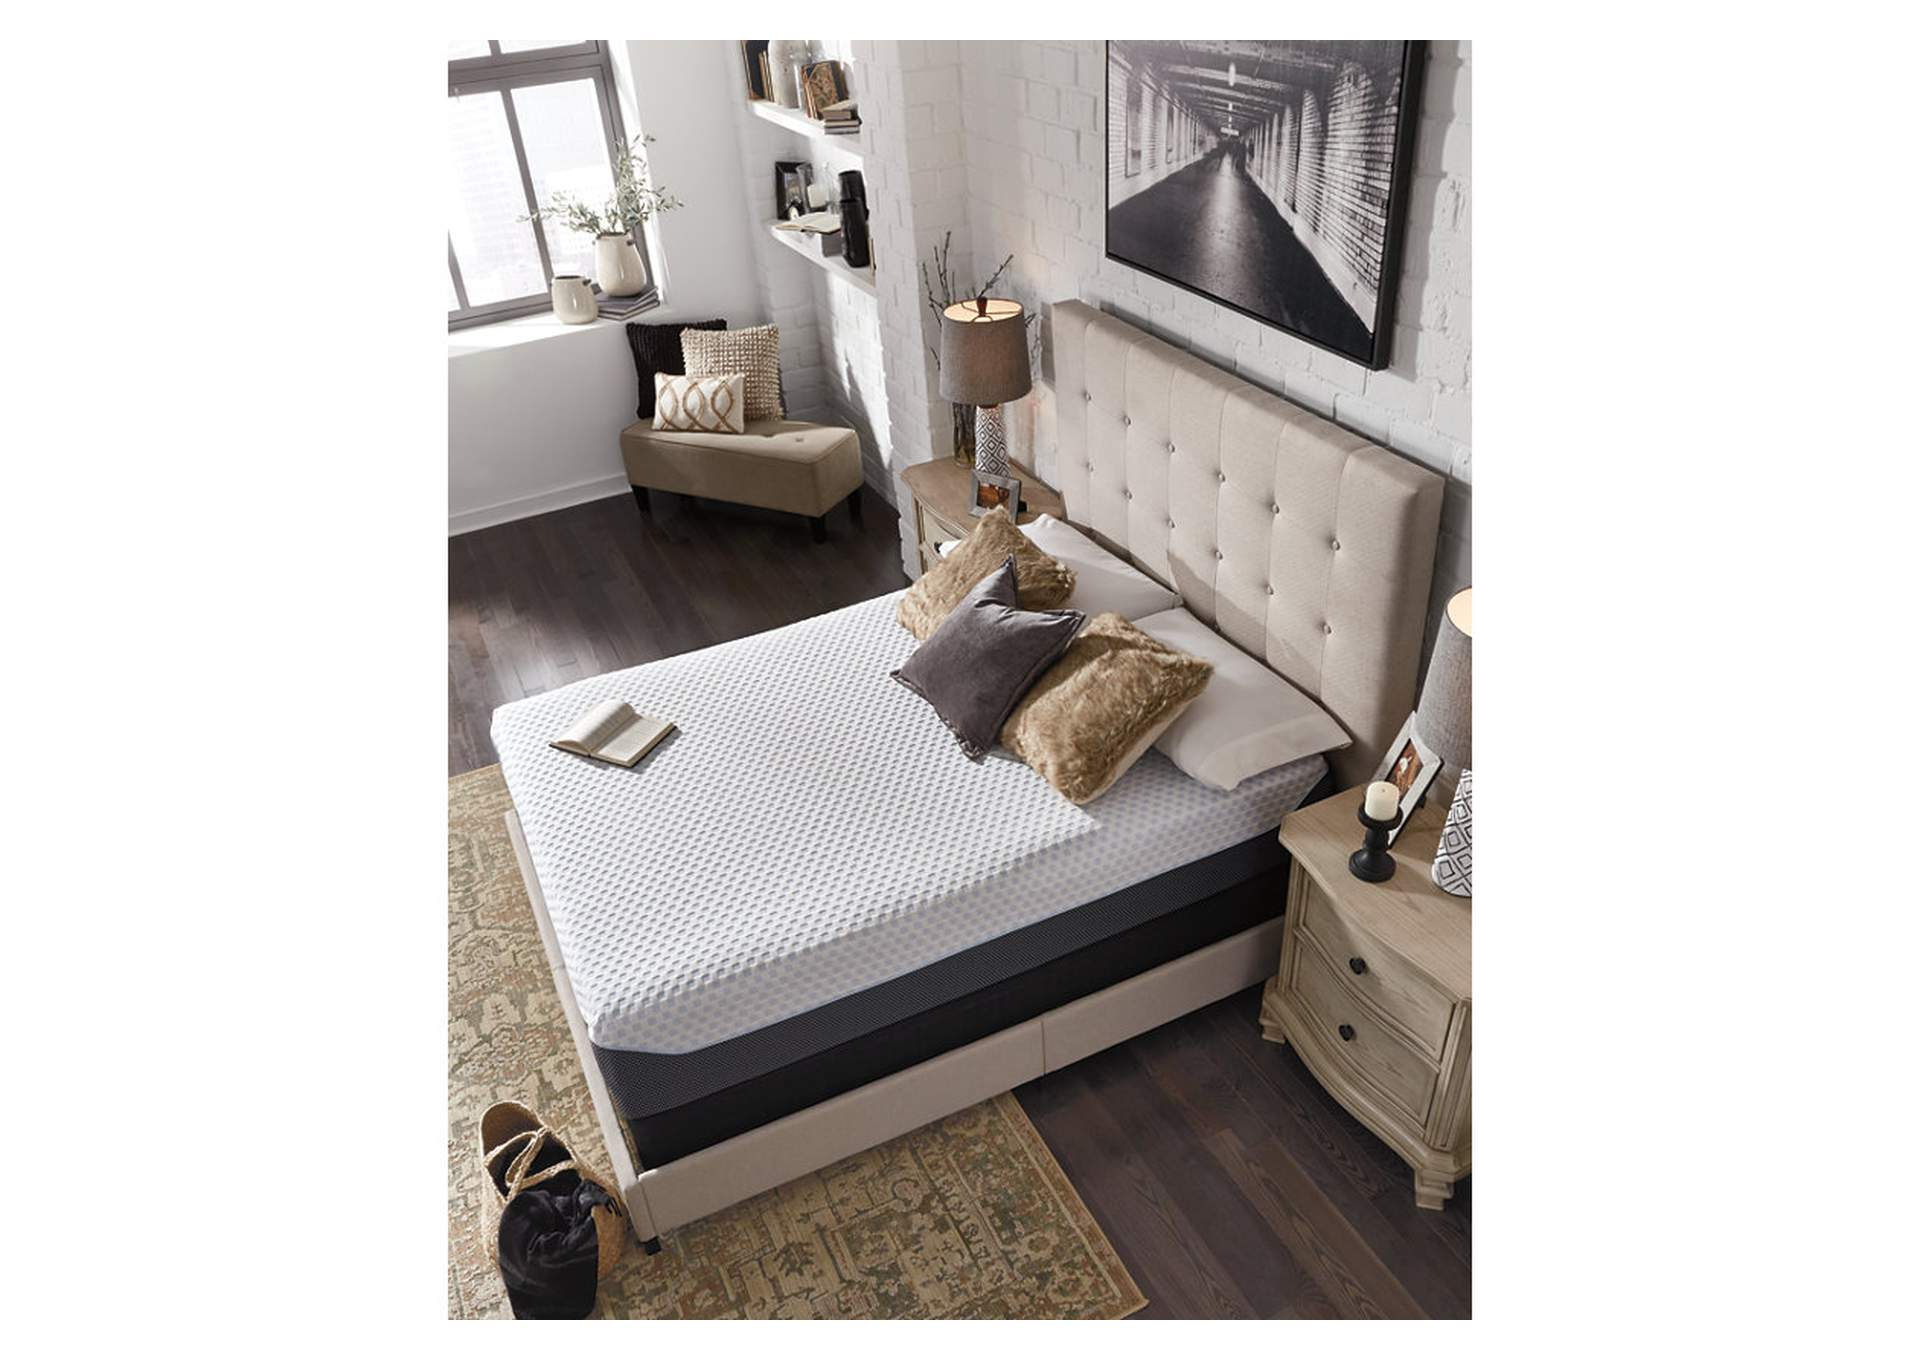 12 Inch Chime Elite Twin Memory Foam Mattress in a box,Sierra Sleep by Ashley